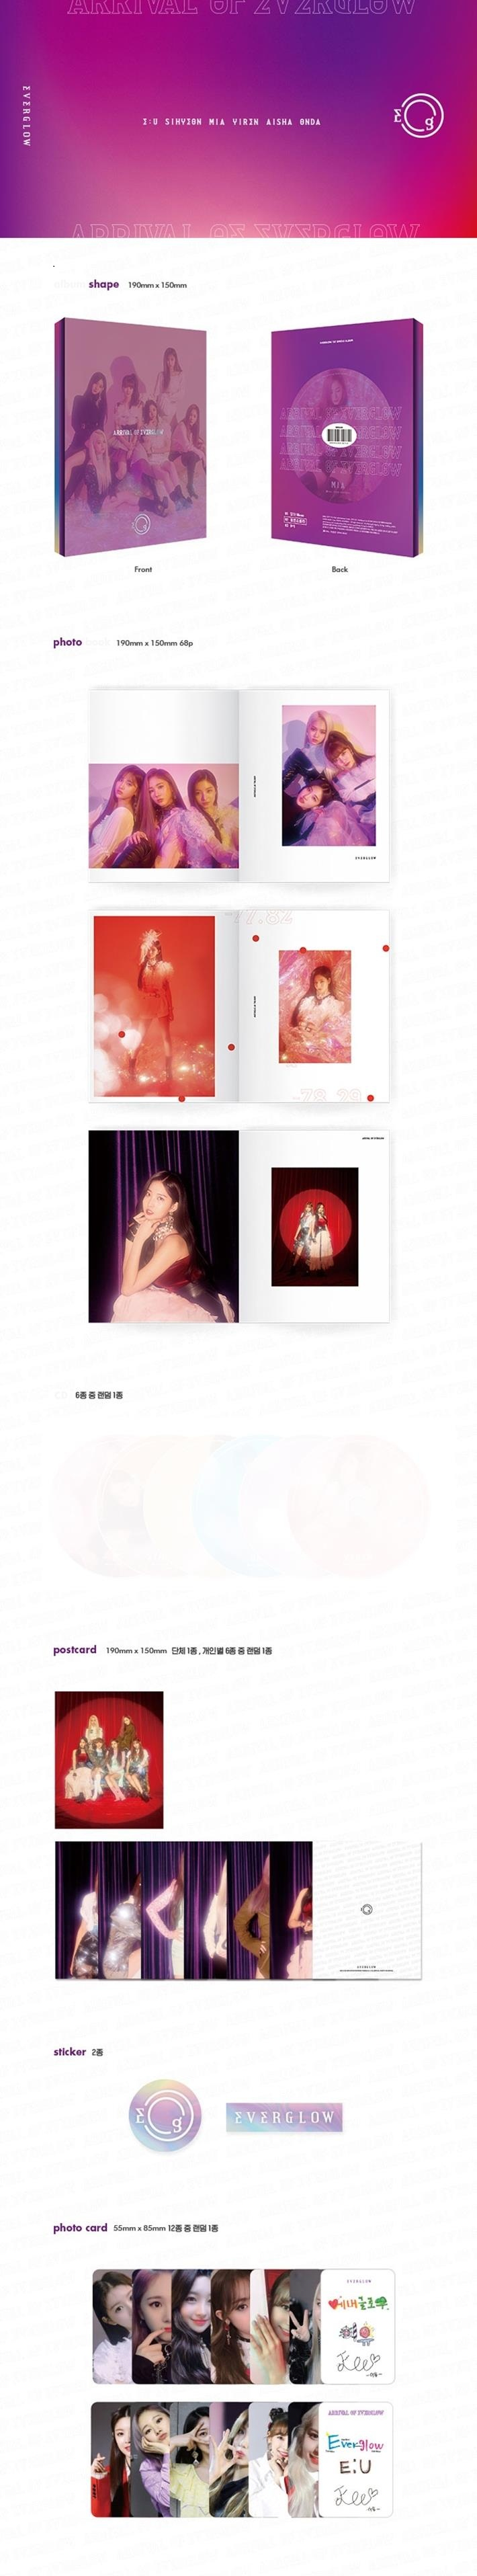 [MYKPOP]~100% OFFICIAL ORIGINAL~ EVERGLOW: ARRIVAL OF EVERGLOW CD, KPOP Fans Collection SA19090309